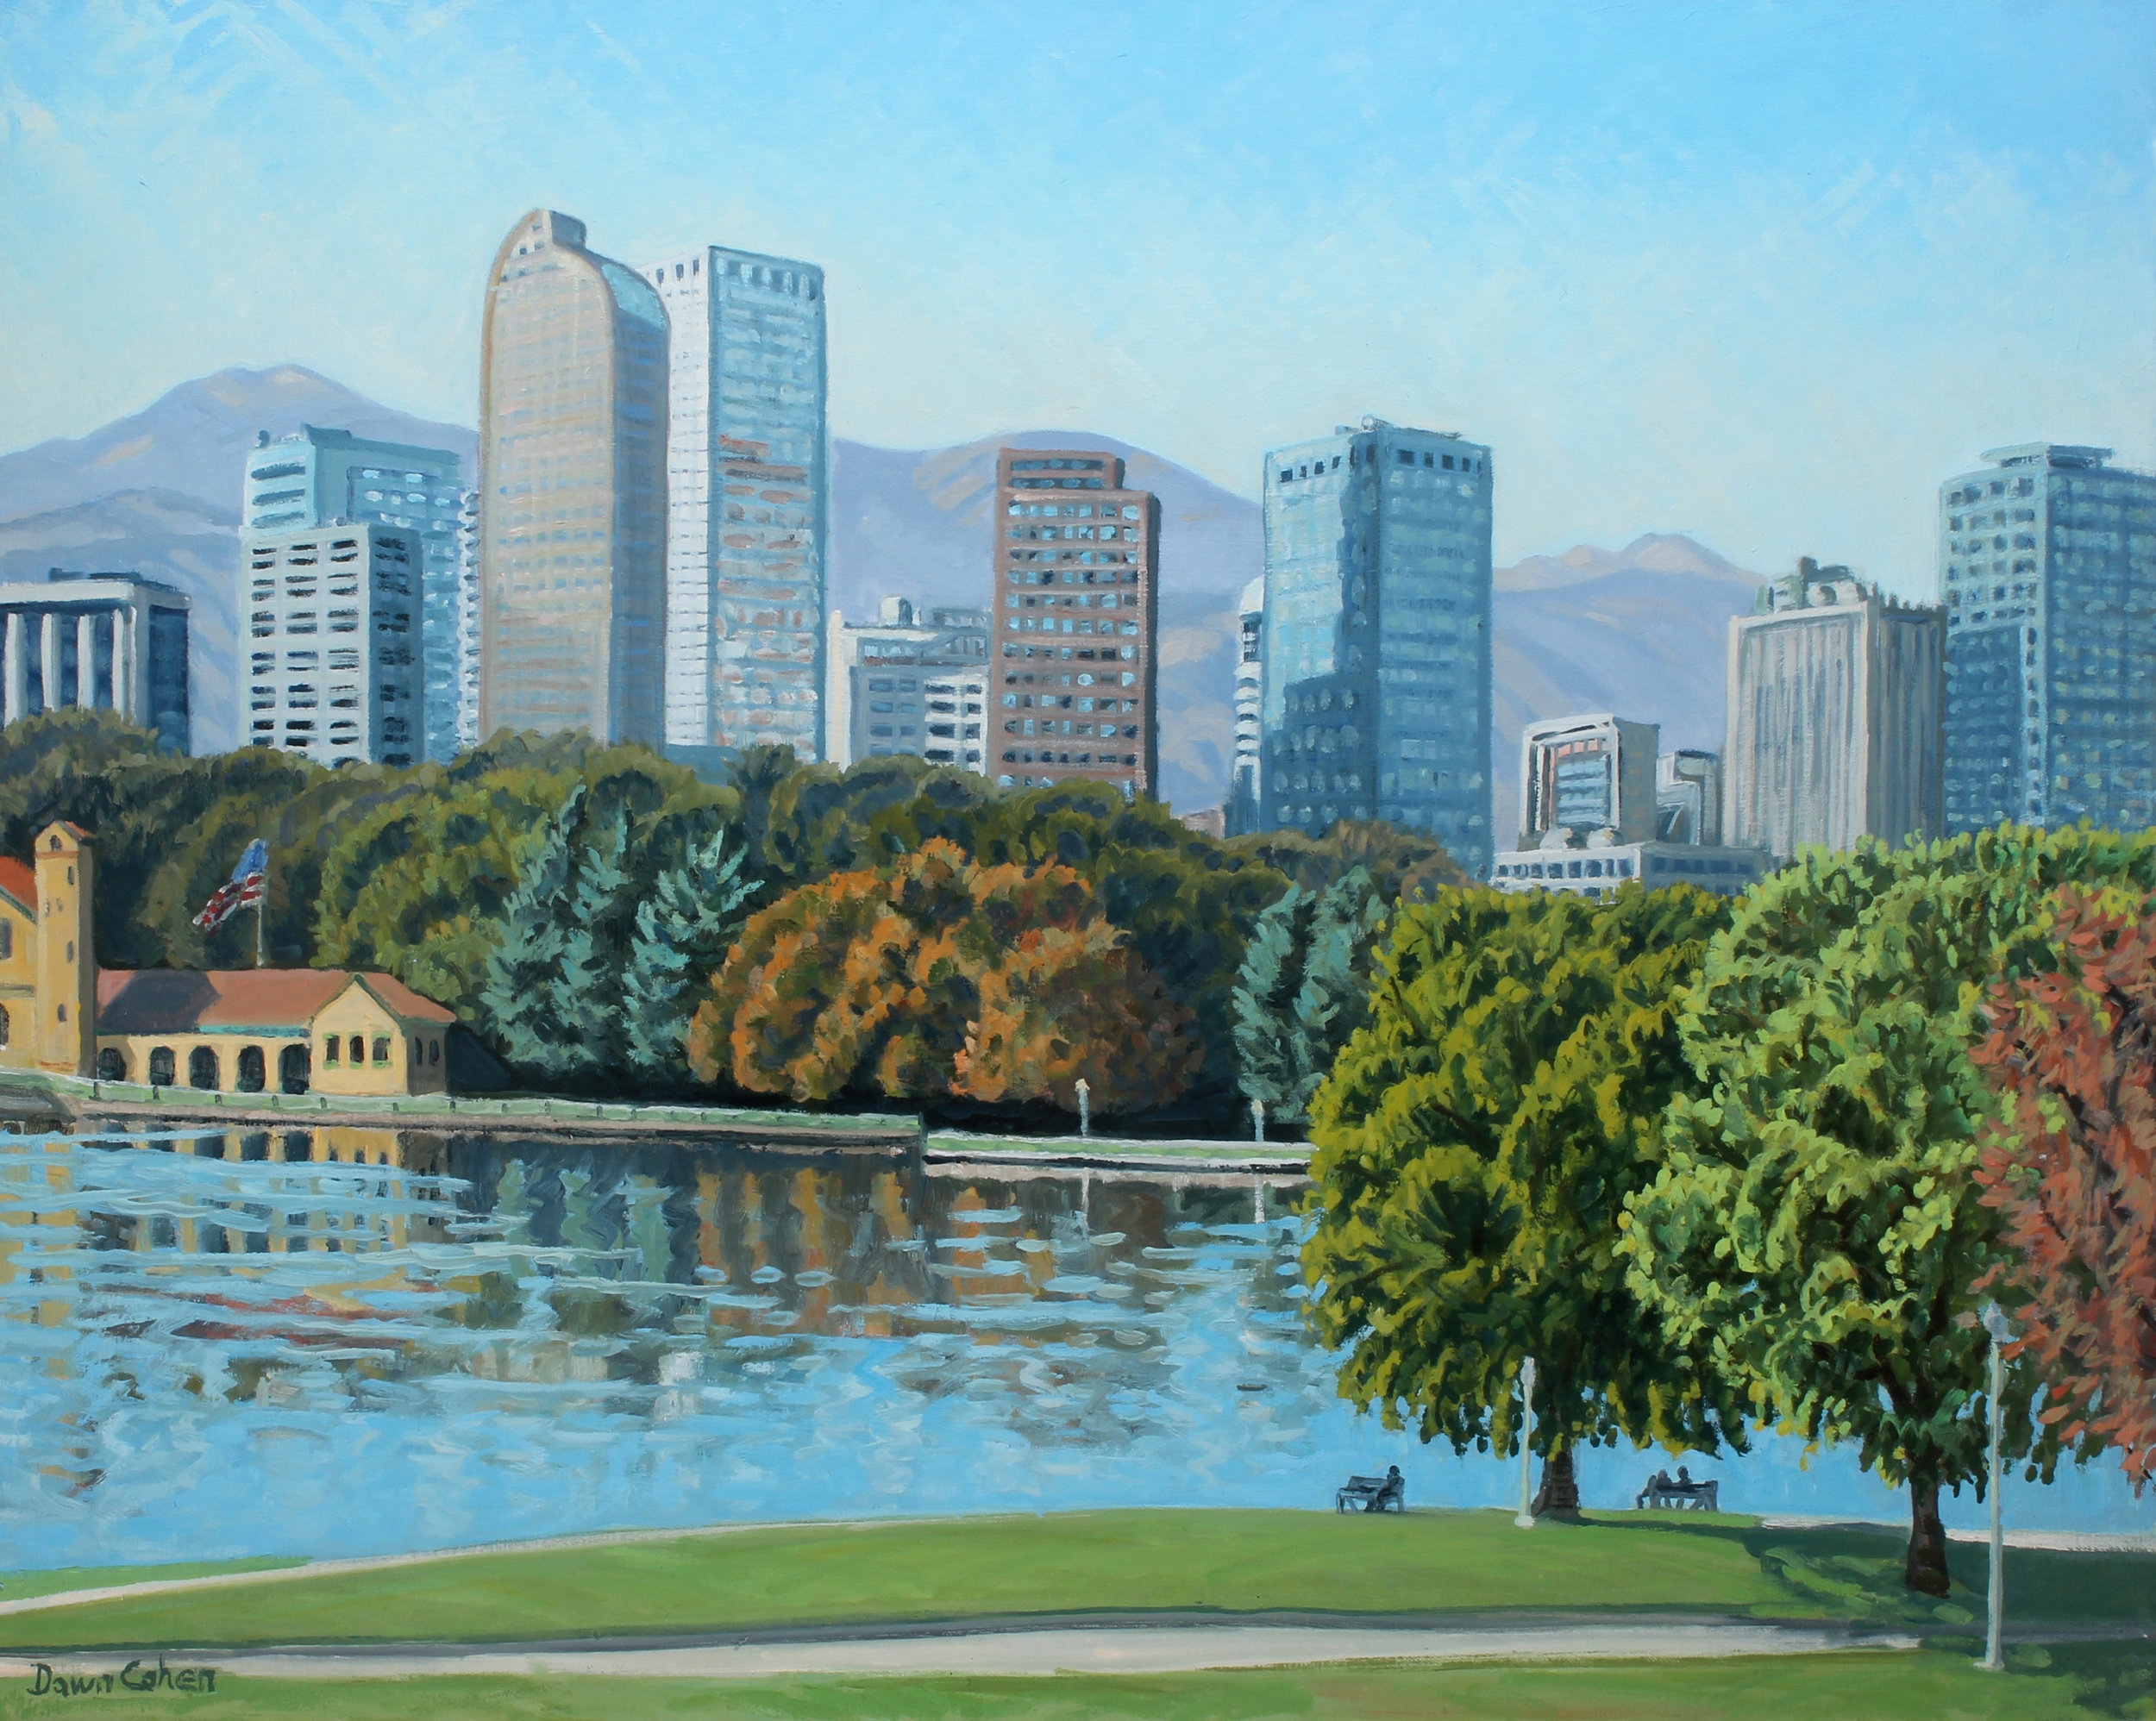 City Park Lake View, 2017. Oil on canvas; 30 x 24 in.